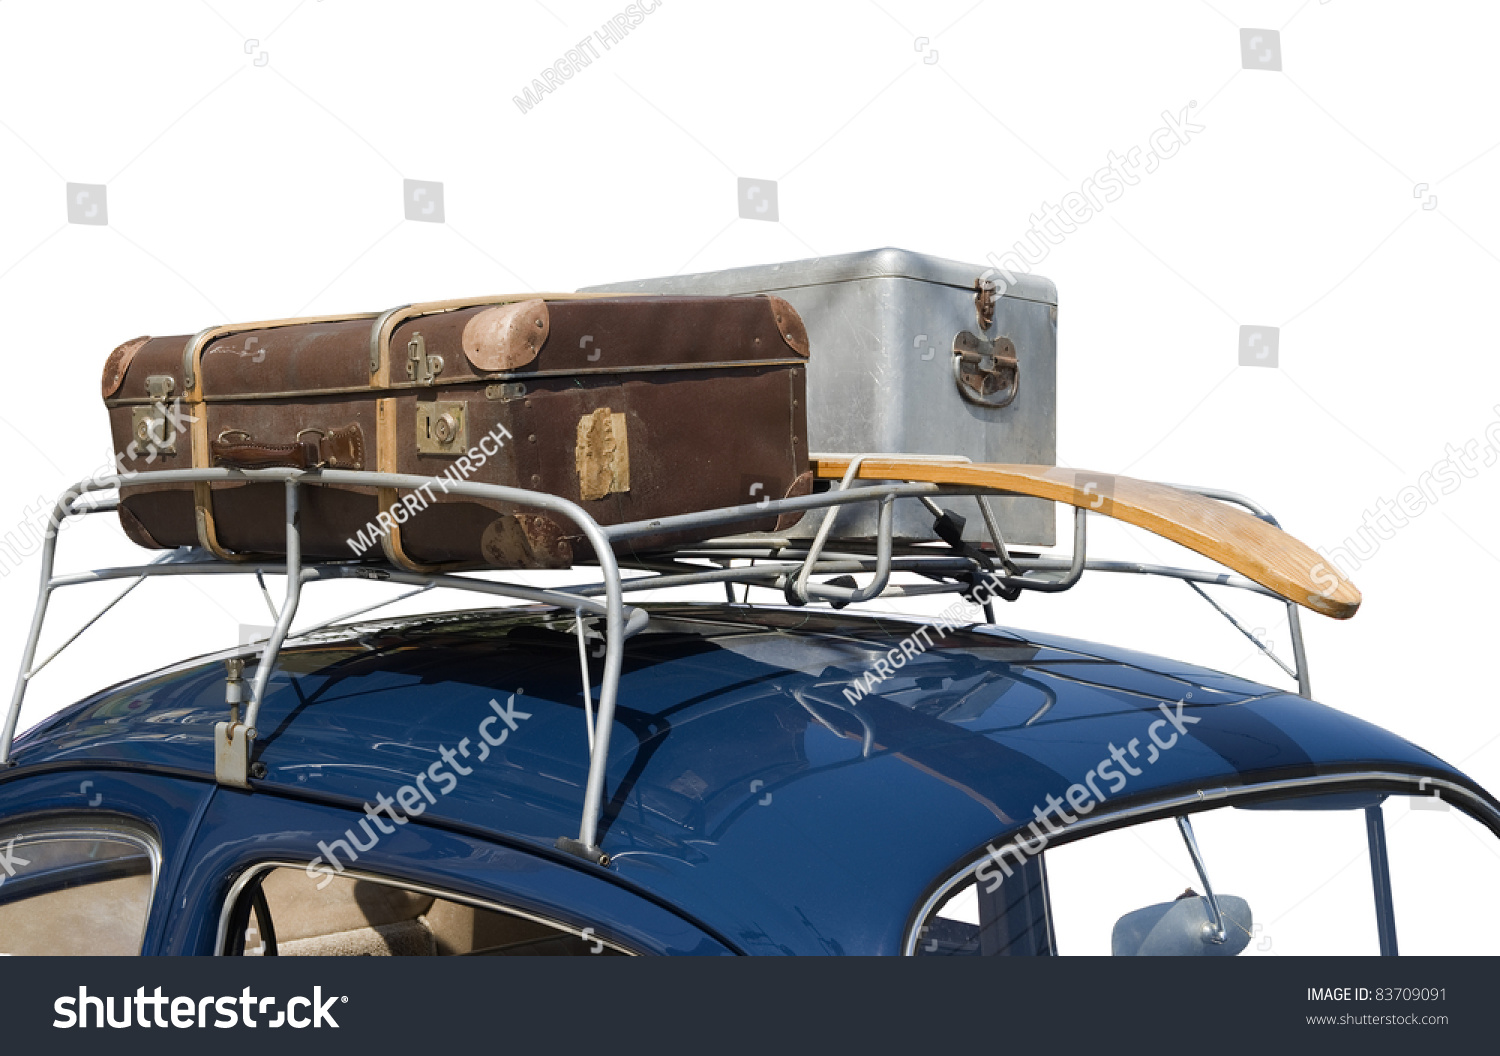 how to carry luggage on top of car